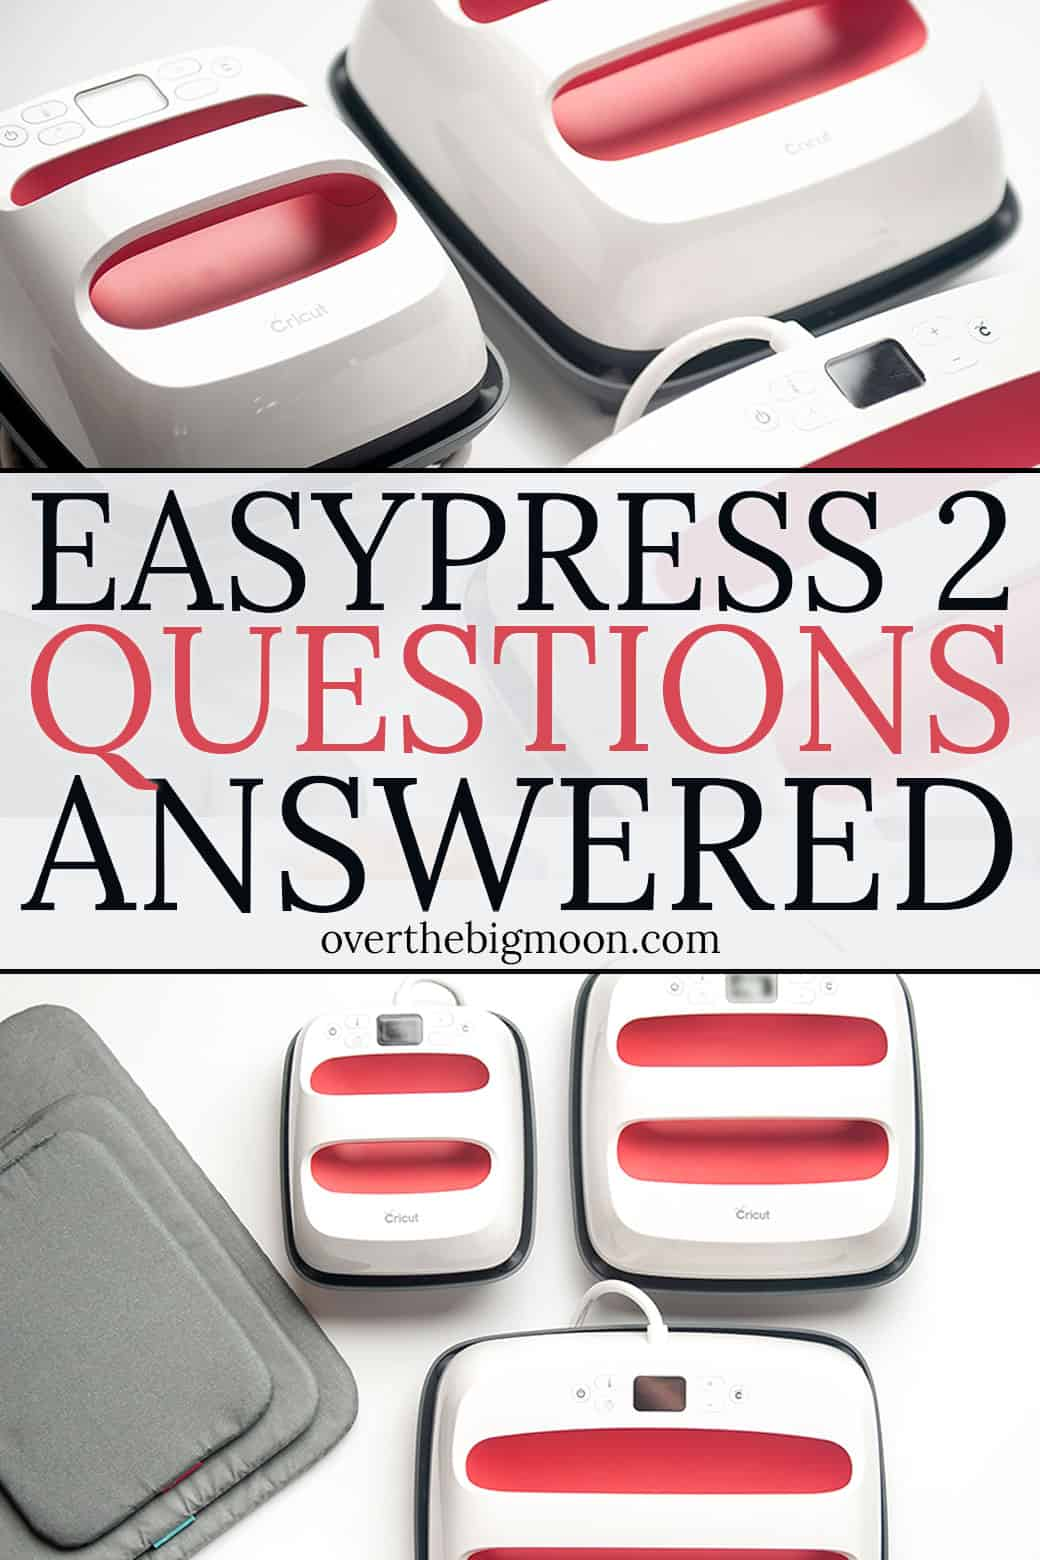 EasyPress 2 Questions Answered!! I'm answering reader EasyPress 2 questions! 1 of 3 blog posts answering Everything you Need to Know about the EasyPress 2 and using Iron On Vinyl! From overthebigmoon.com!